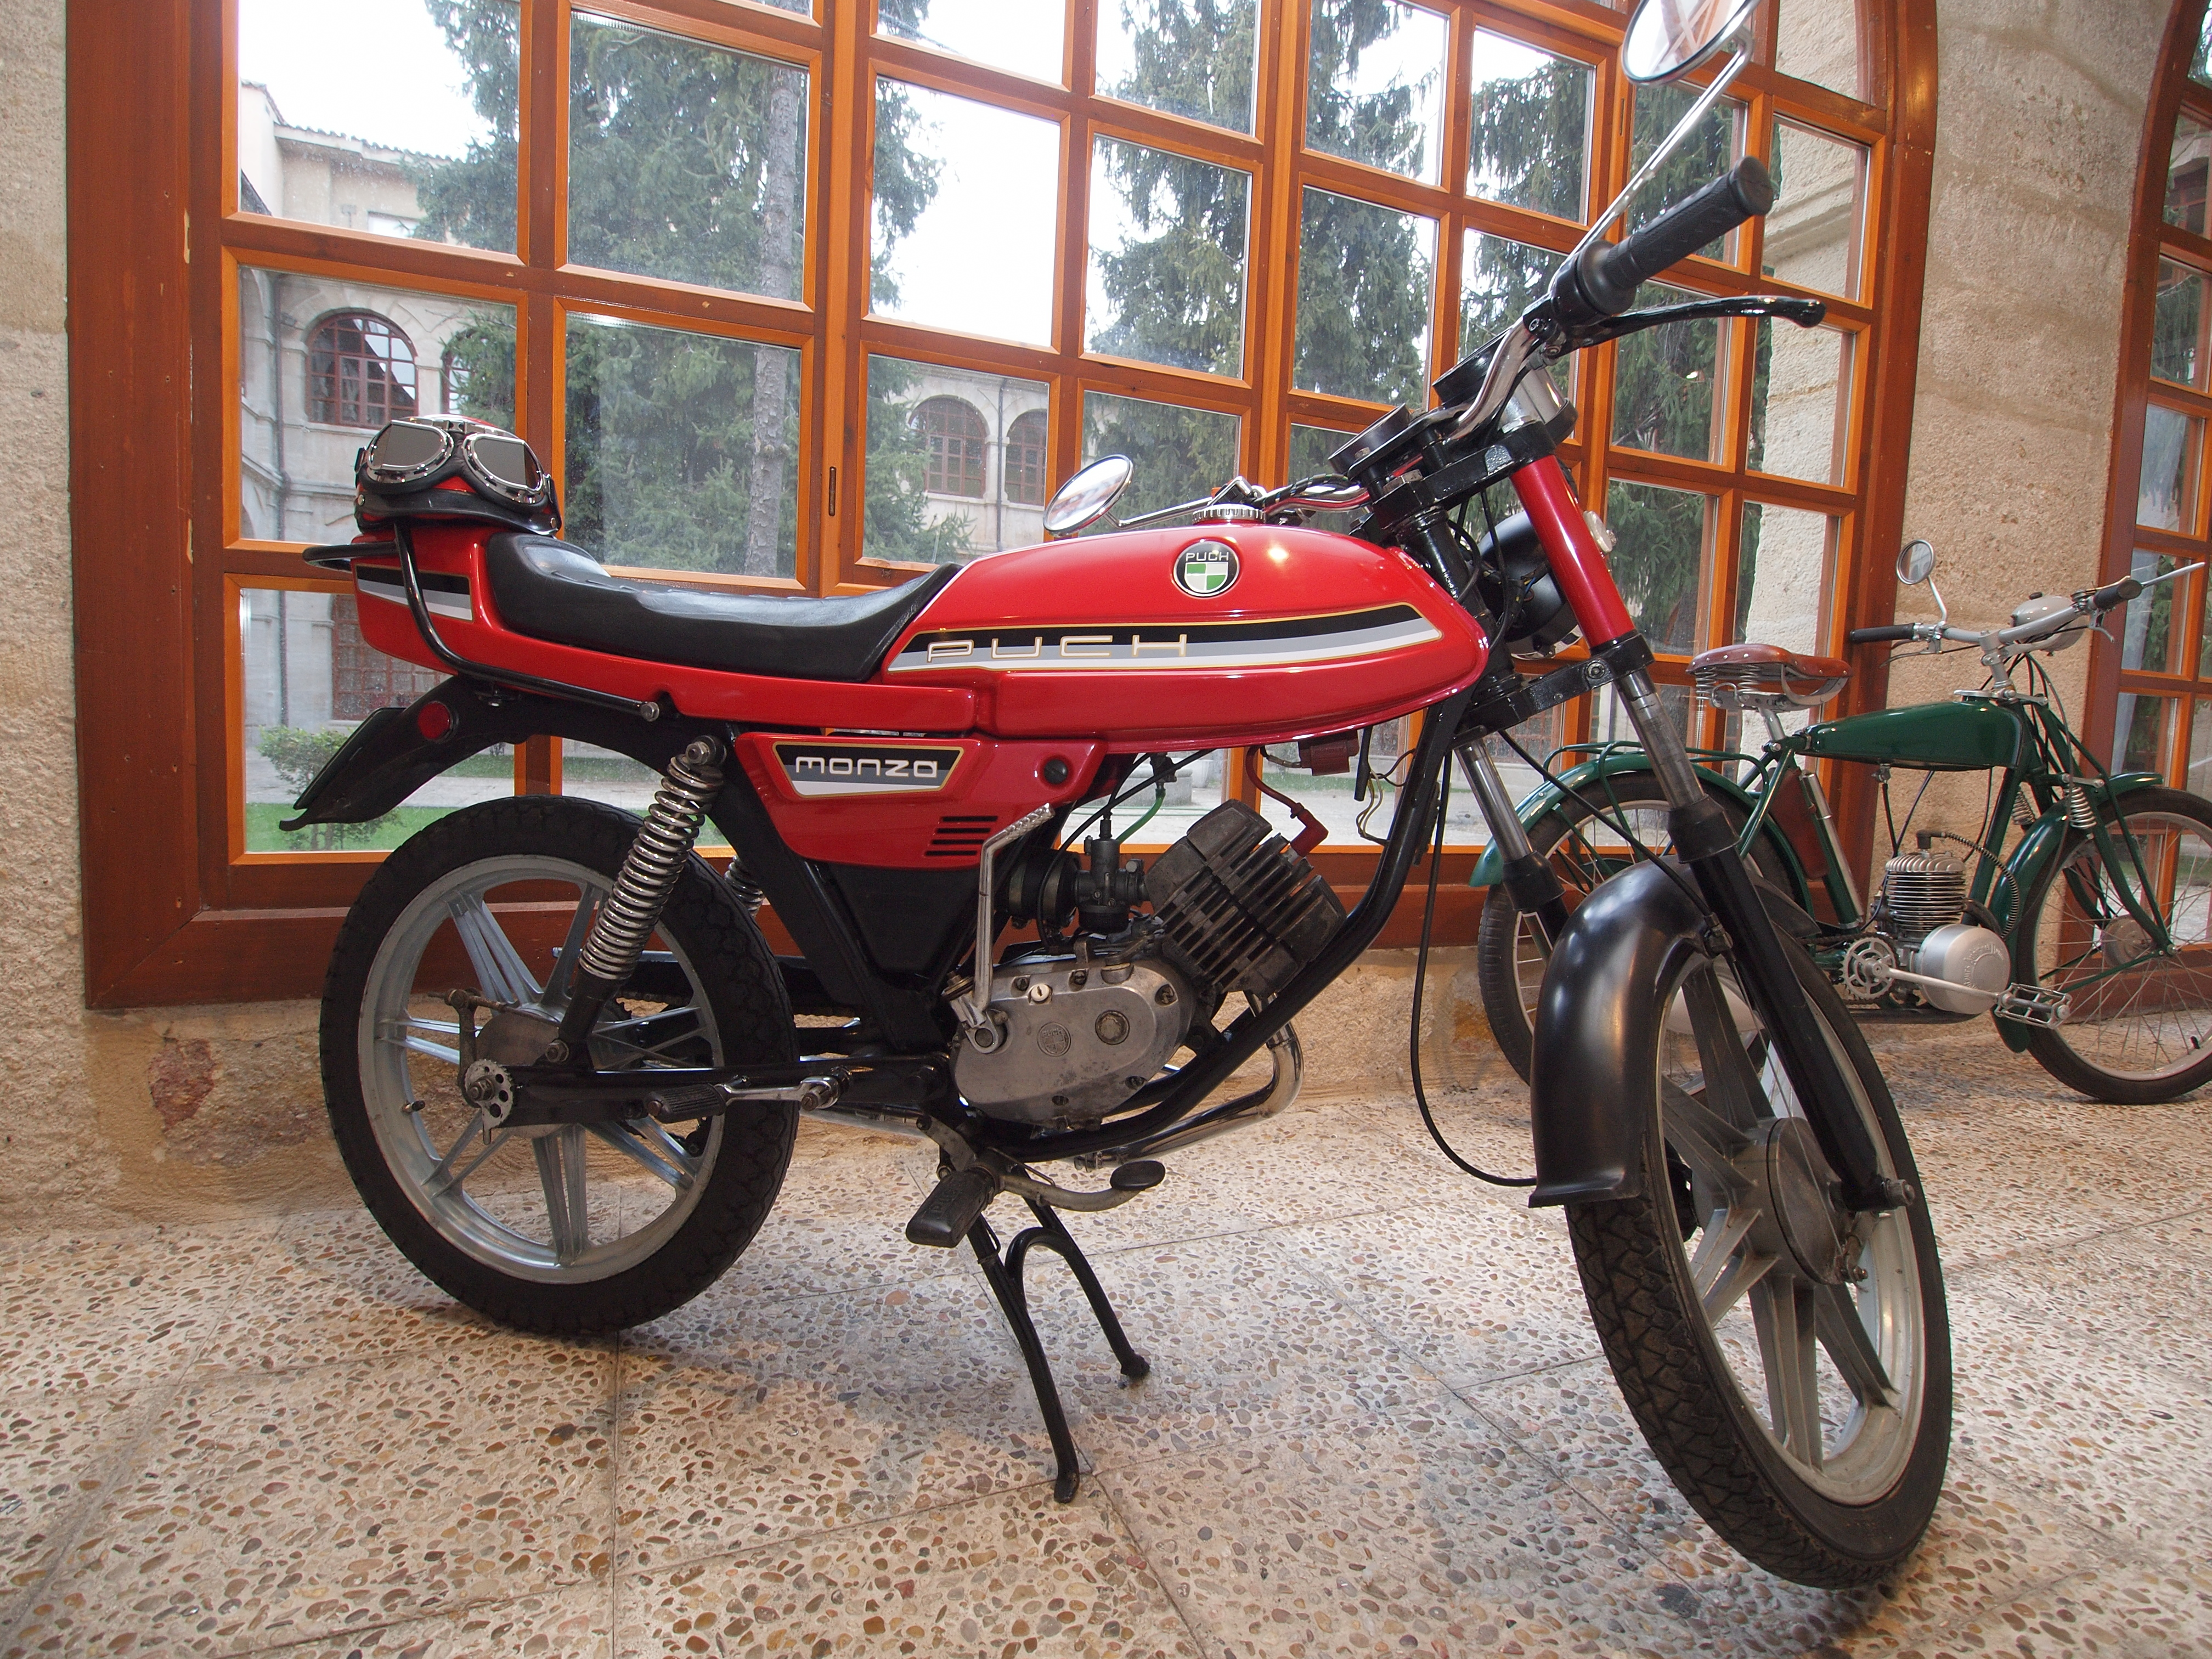 Puch monza photo - 3